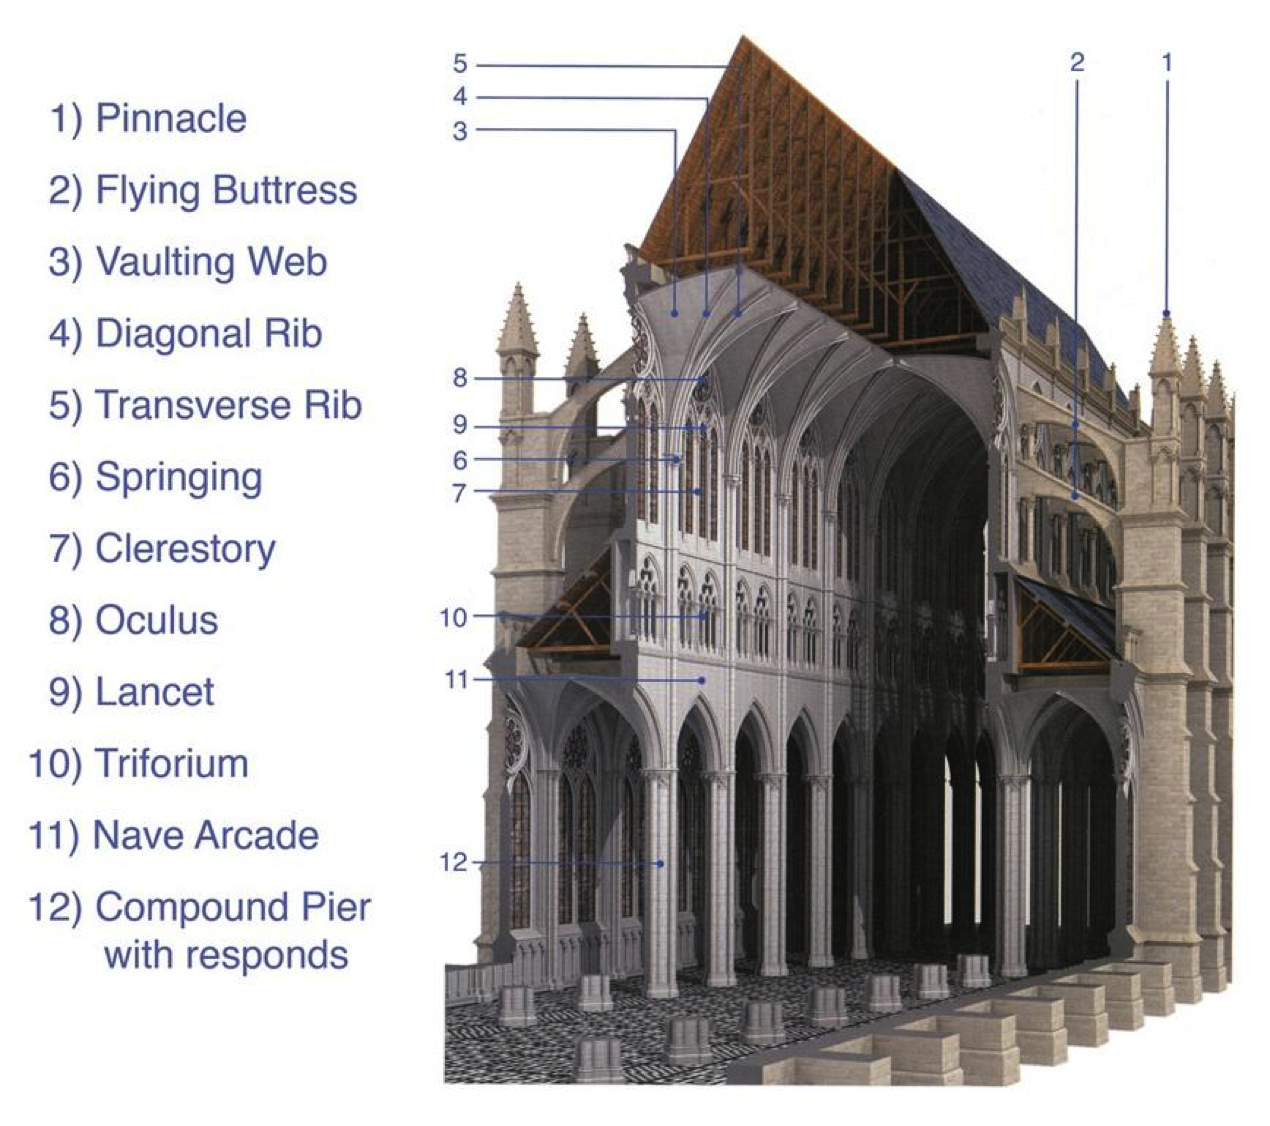 Cross Section Of A Cathedral Showing The Major Architectural Features Untitled1323743639824 1270x1126 Pixels WEEK 12